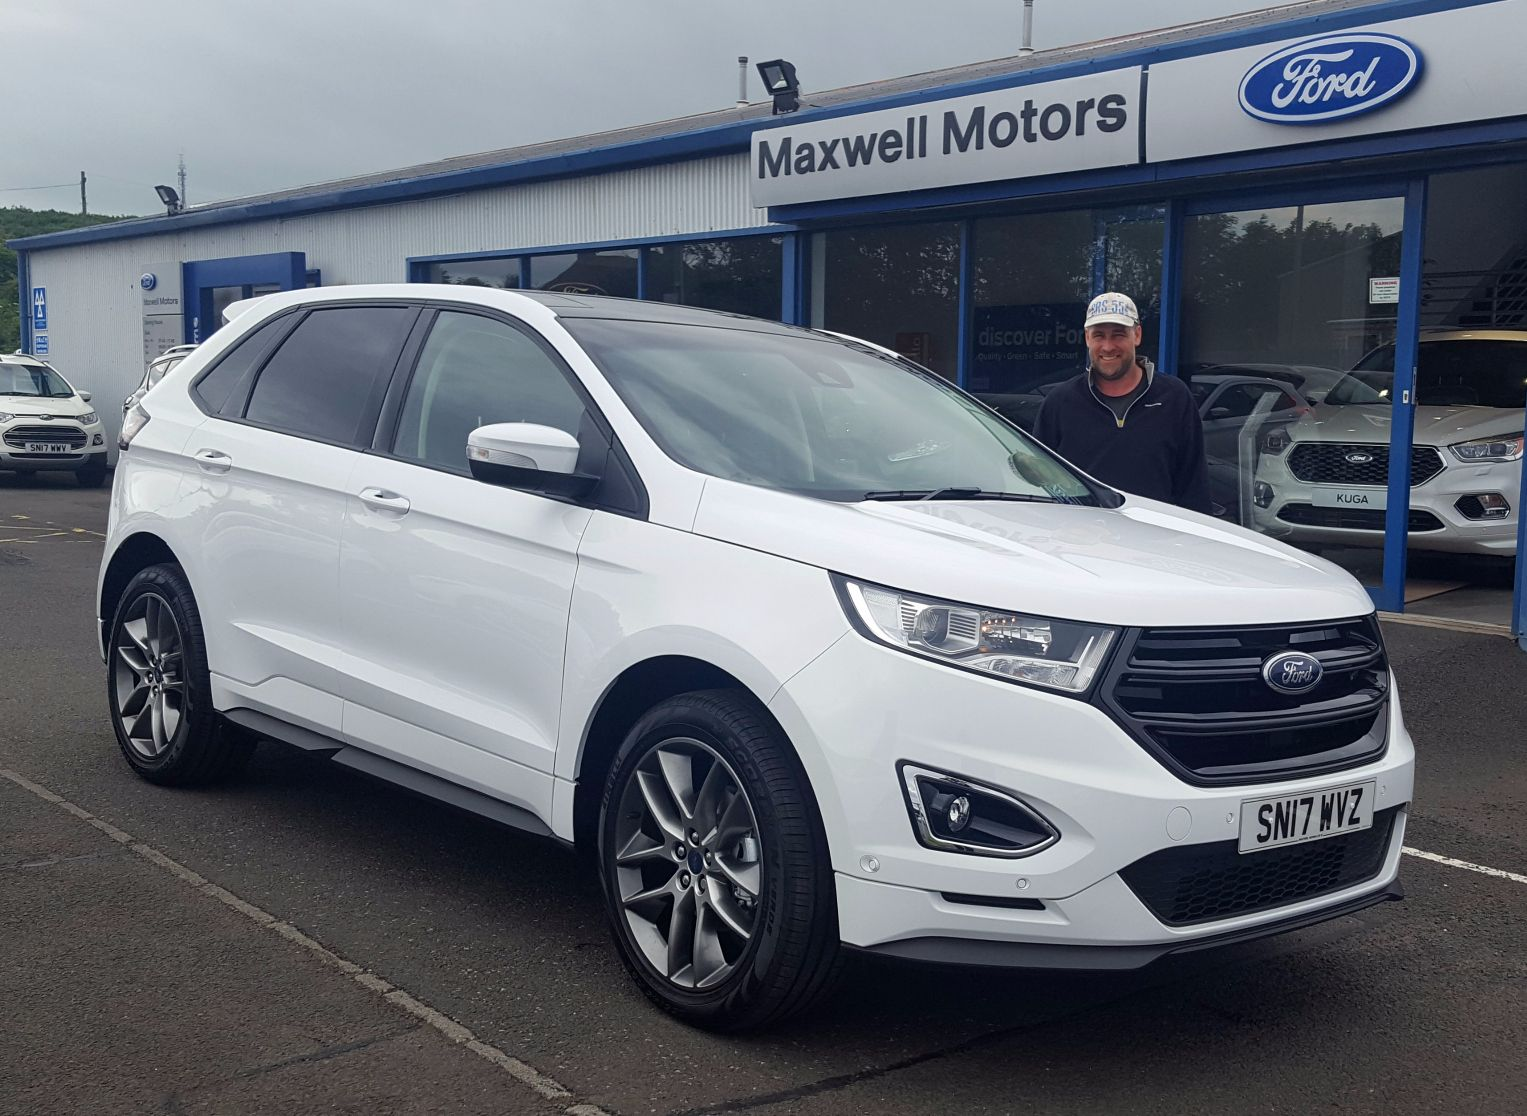 NEW FORD EDGE HEADS FOR DUNS...